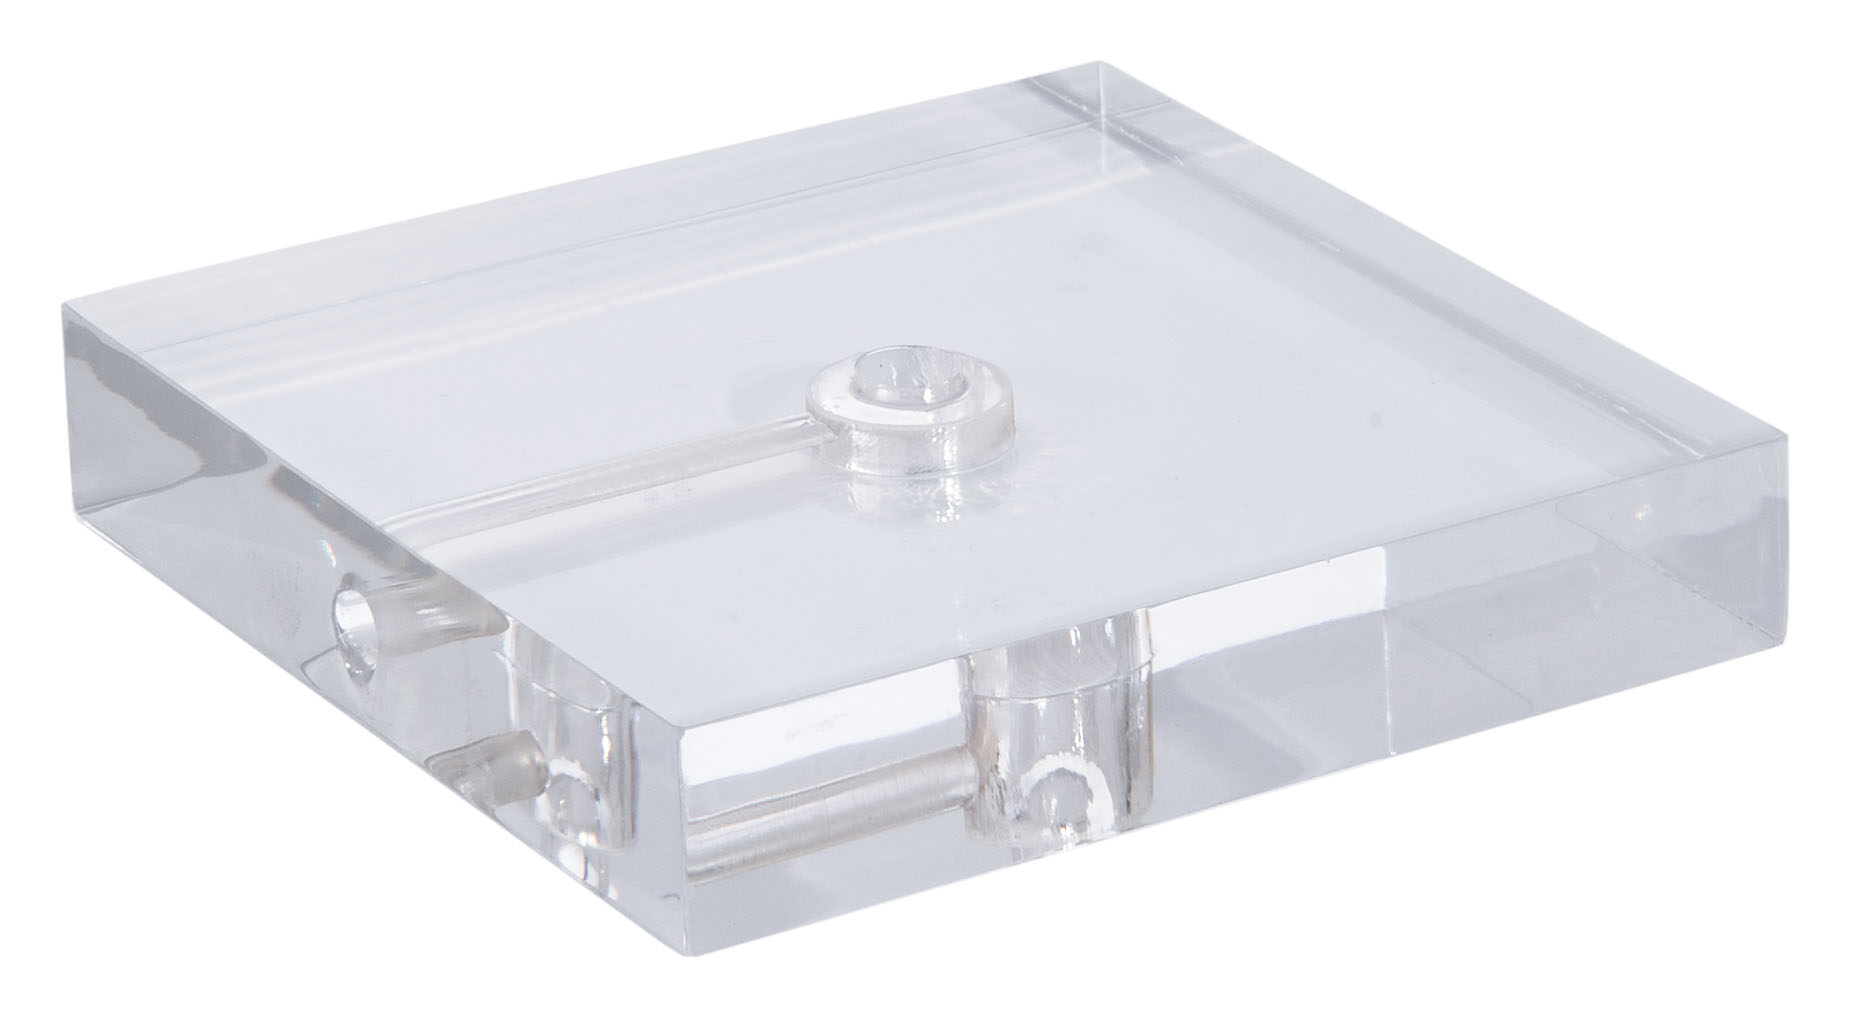 Clear acrylic square lamp bases wwire way 10287 bp lamp supply view image in new window mozeypictures